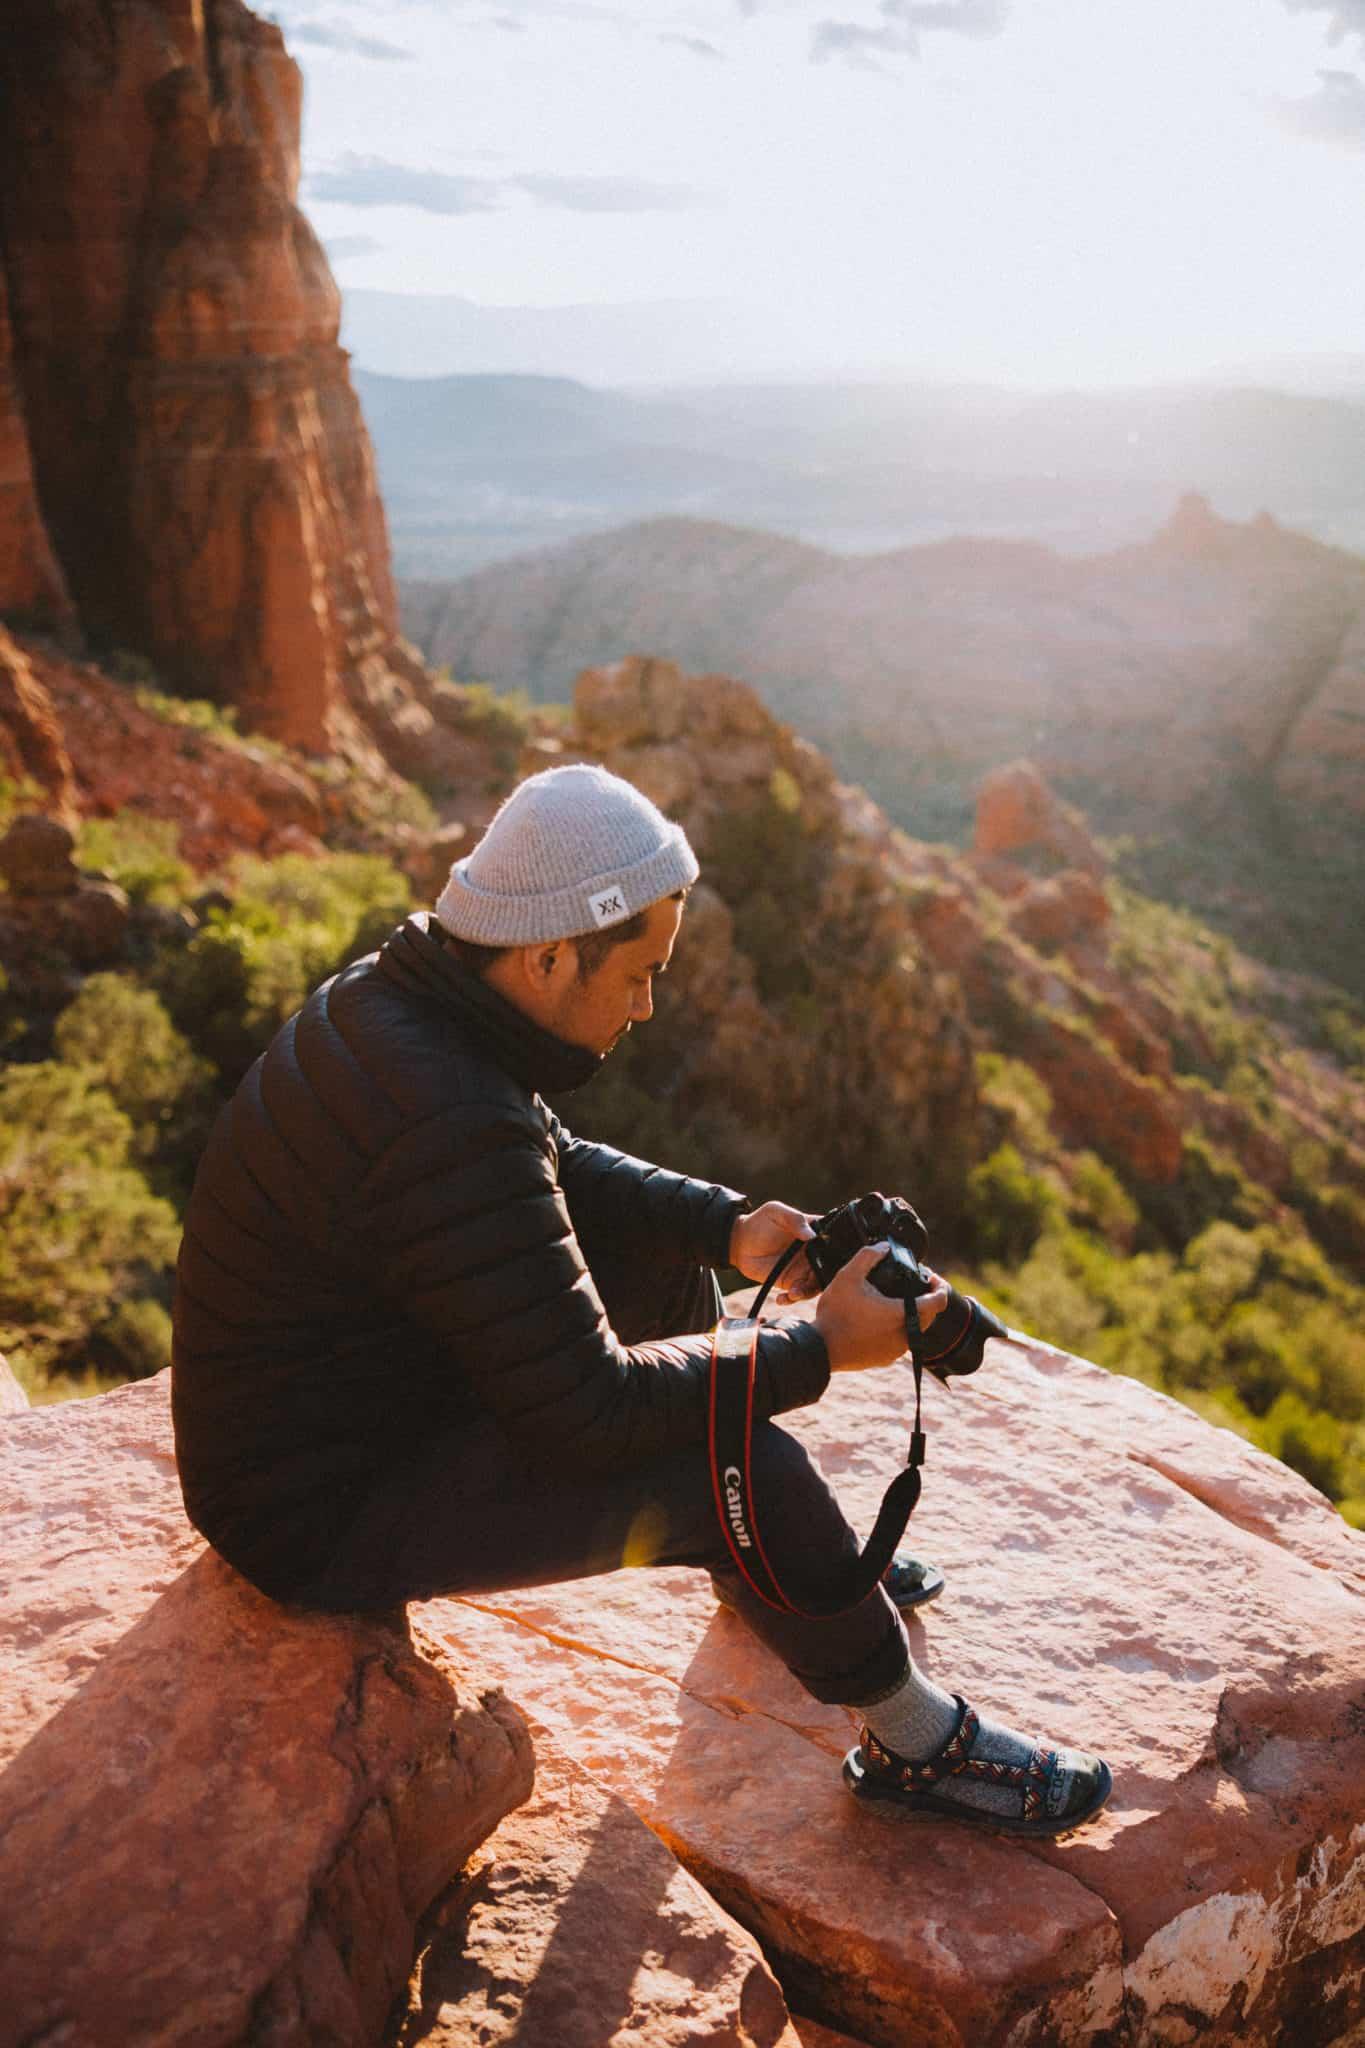 Berty Mandagie sitting at Cathedral Rock, Sedona - Shot with Canon EOS R